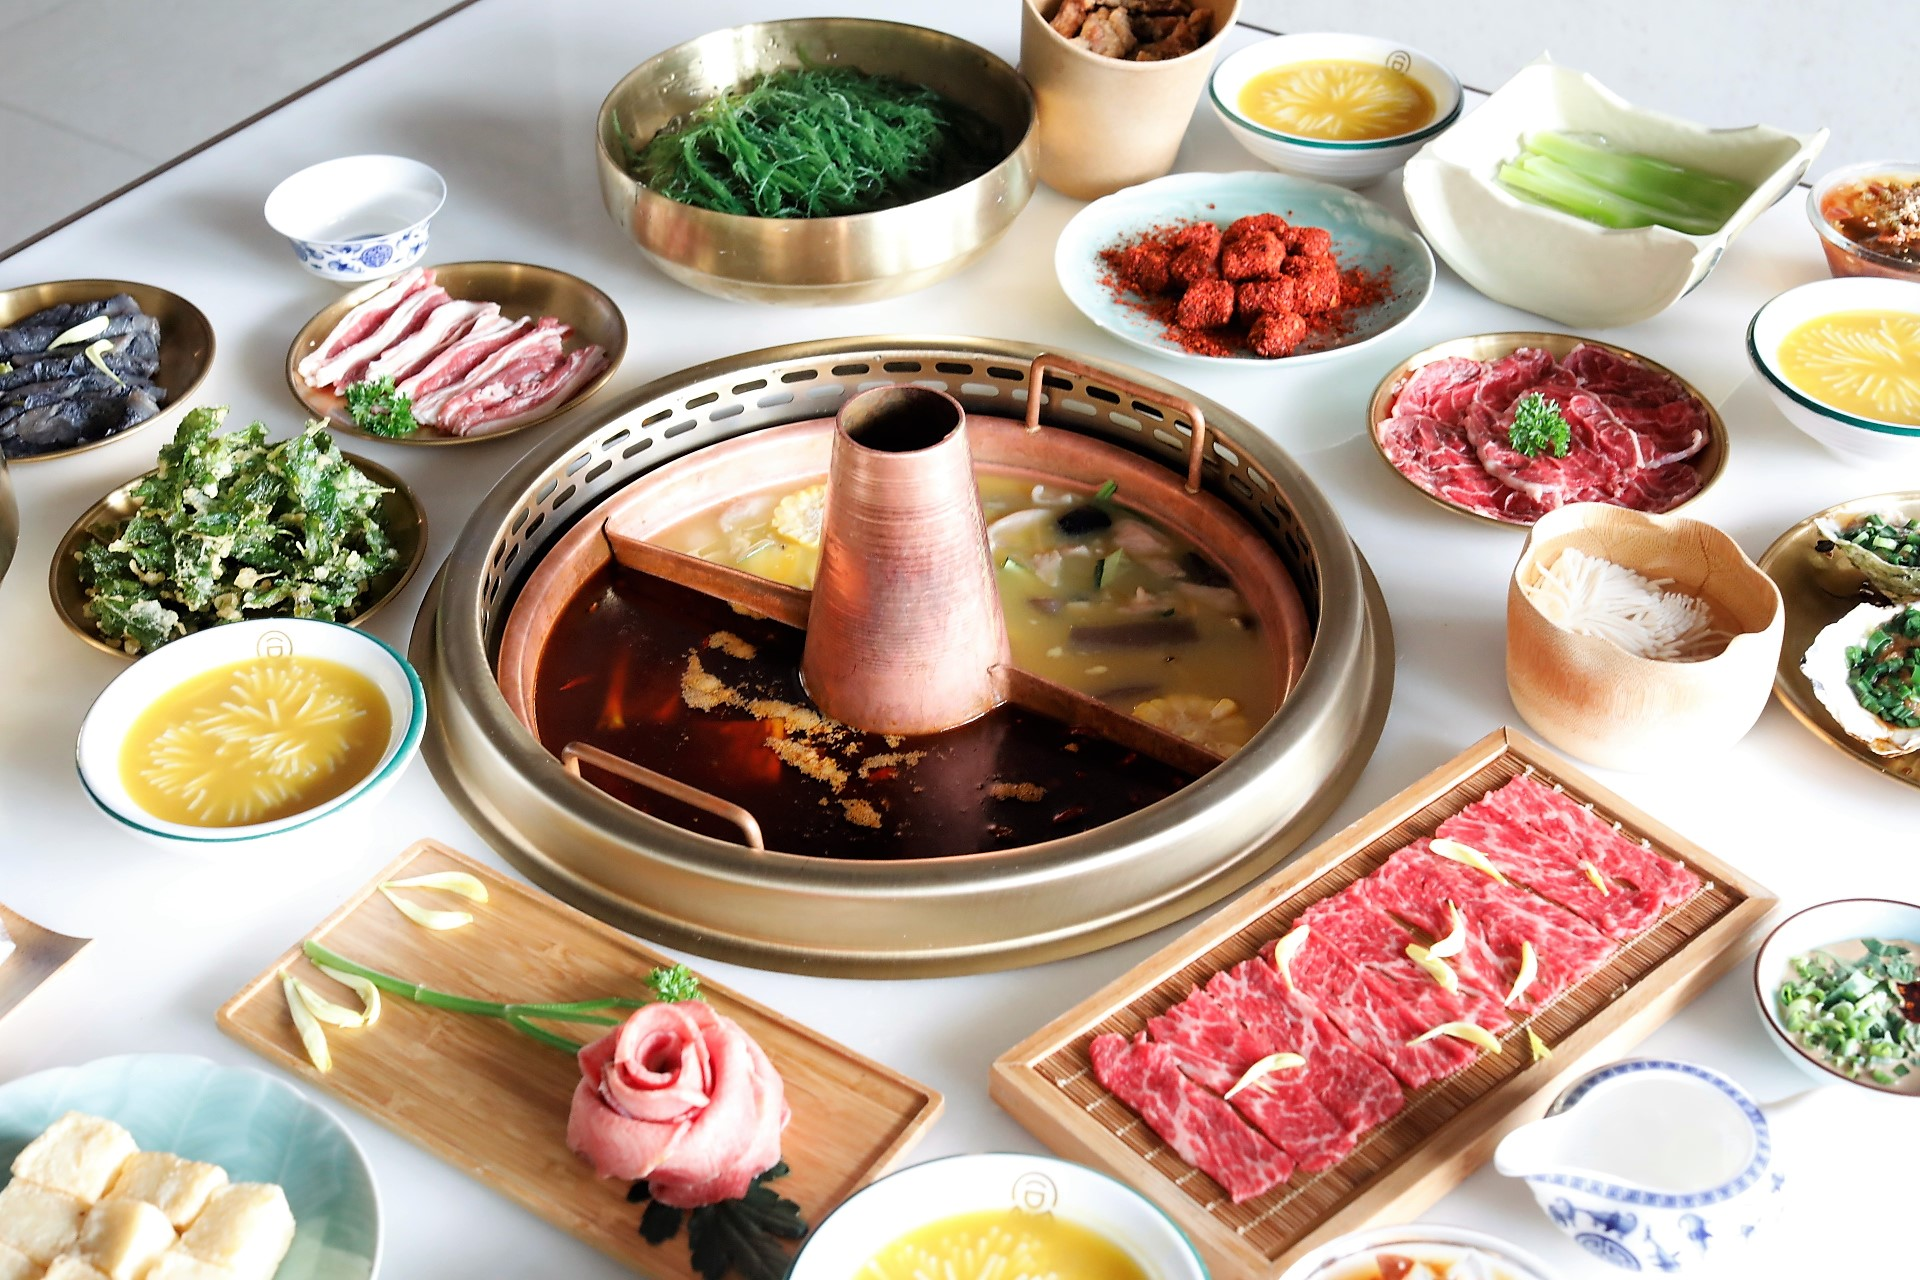 Tong Xin Ru Yi Traditional Hotpot – NEW Hotpot Restaurant With Nourishing Golden Chicken, Frog And Spicy Beef Soups – DanielFoodDiary.com